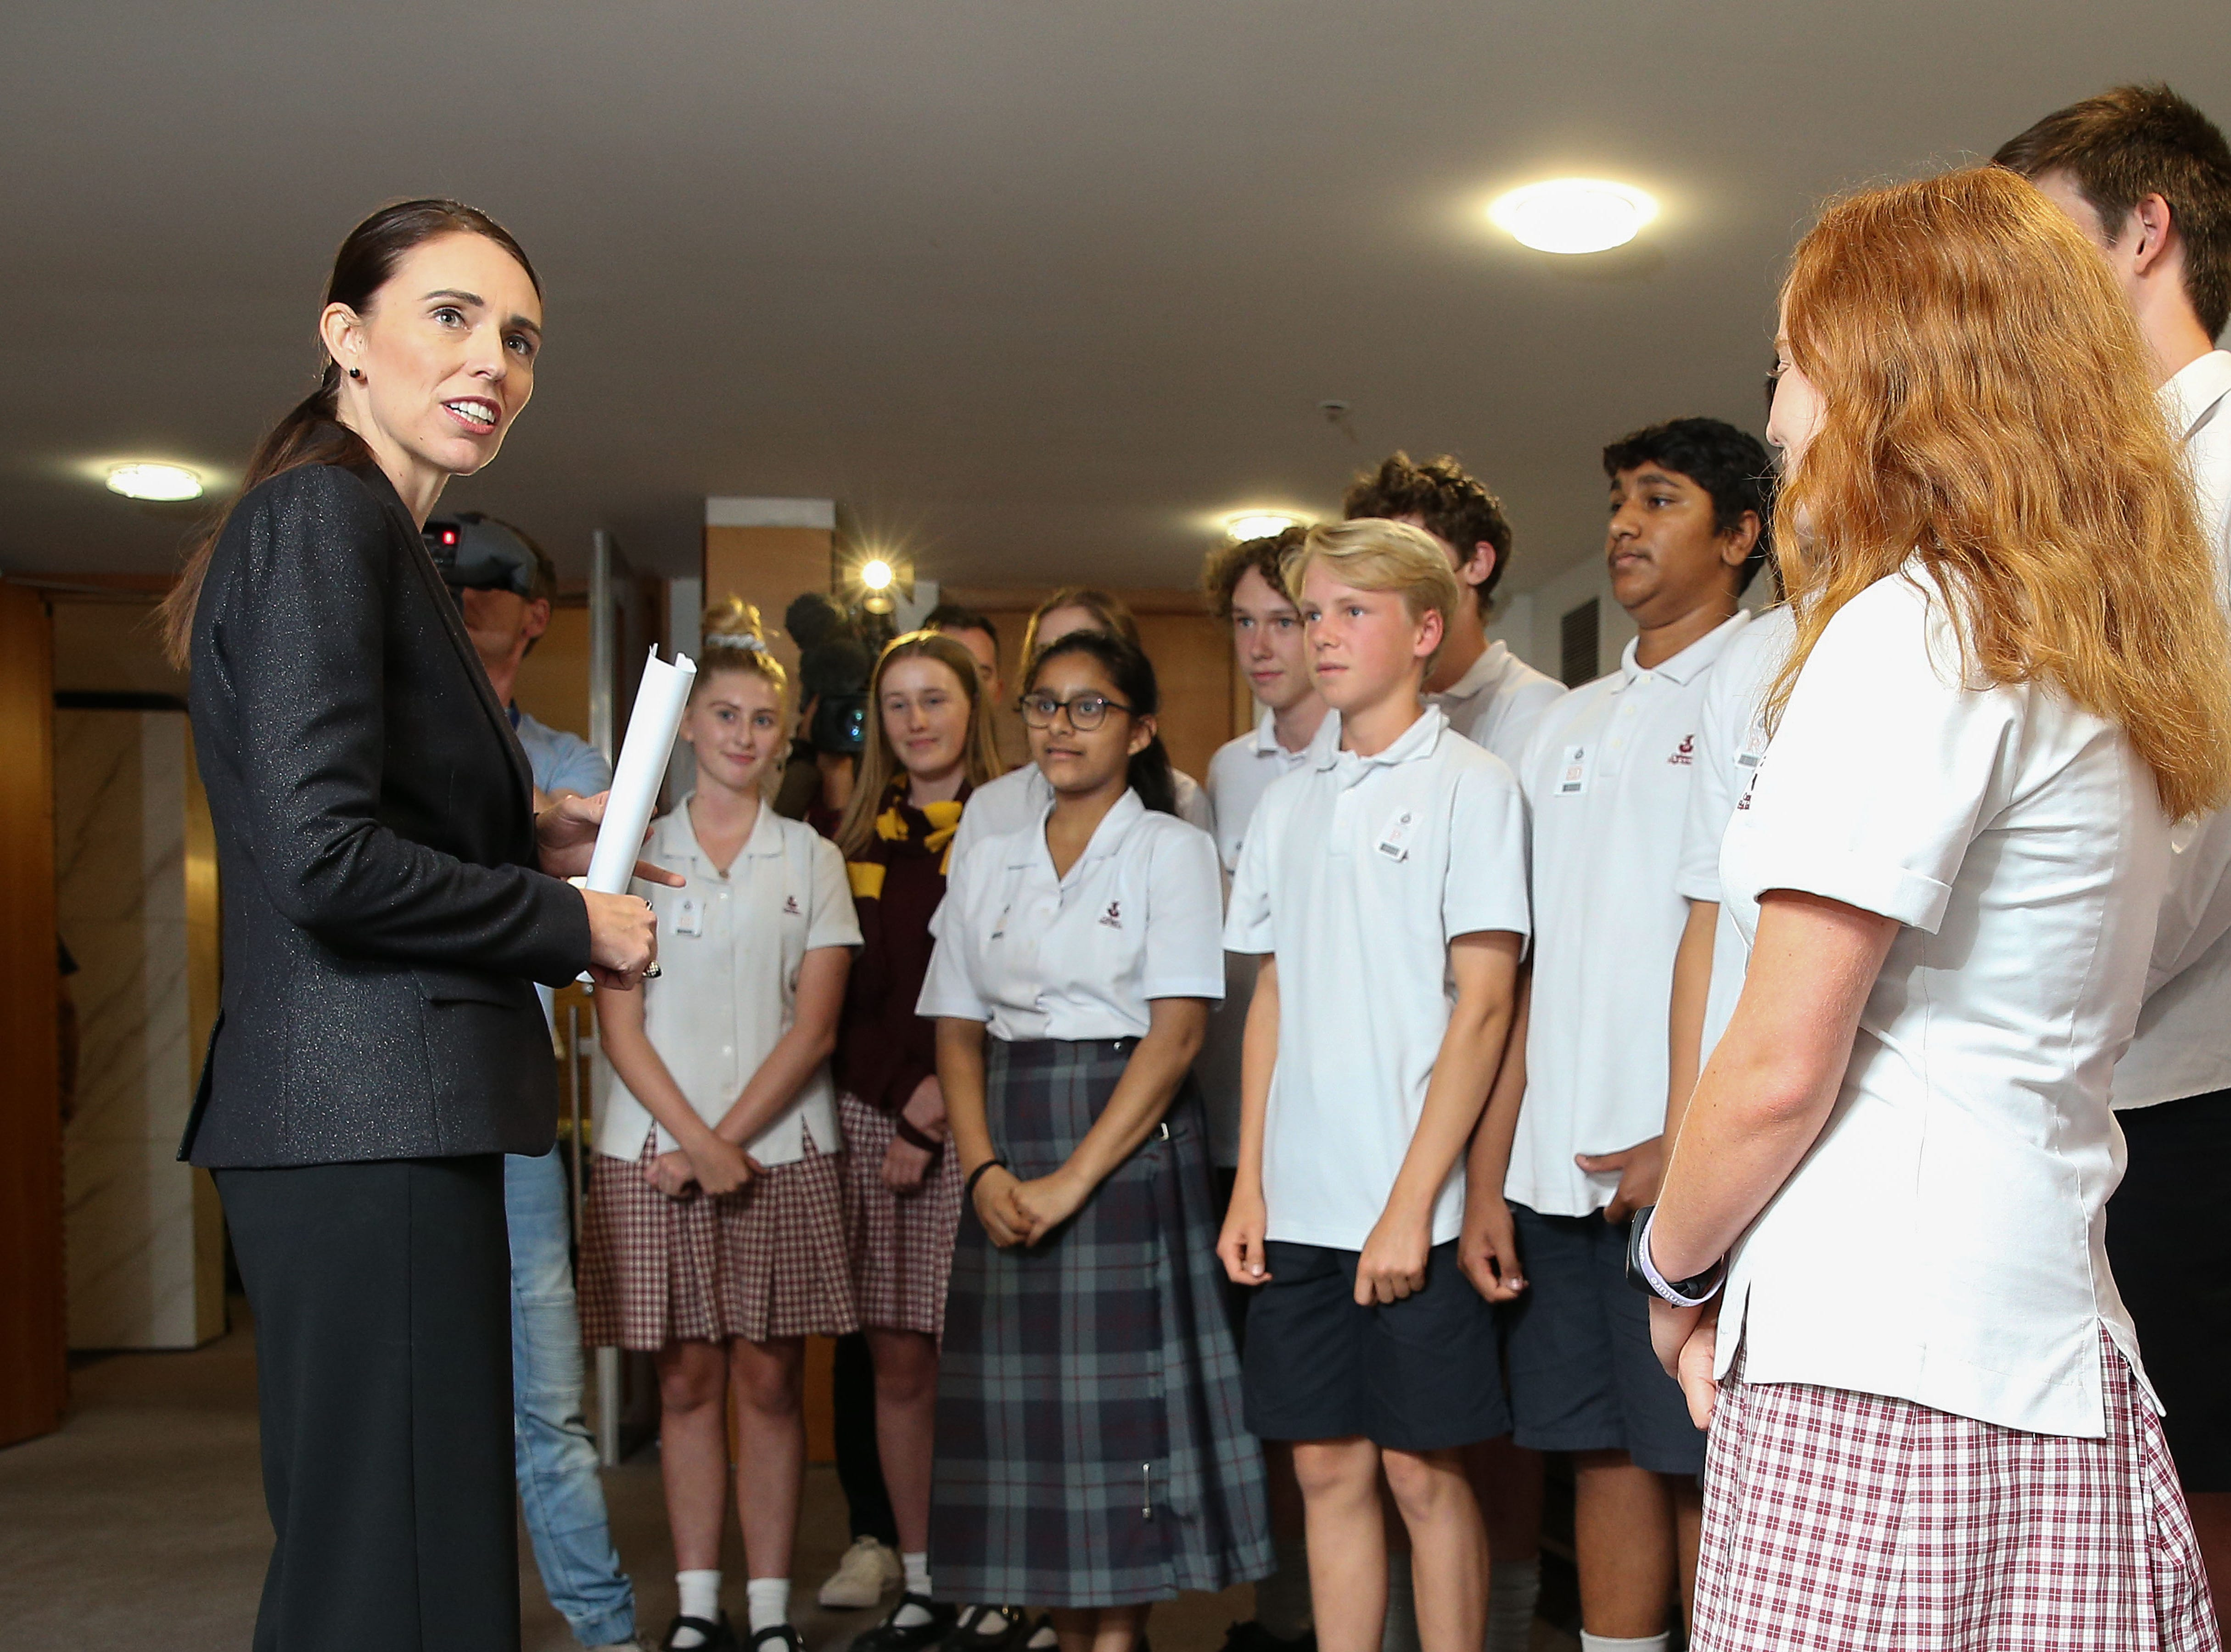 Prime Minister Jacinda Ardern stops to speak with school children before a press conference at Parliament on March 21, 2019 in Wellington, New Zealand.